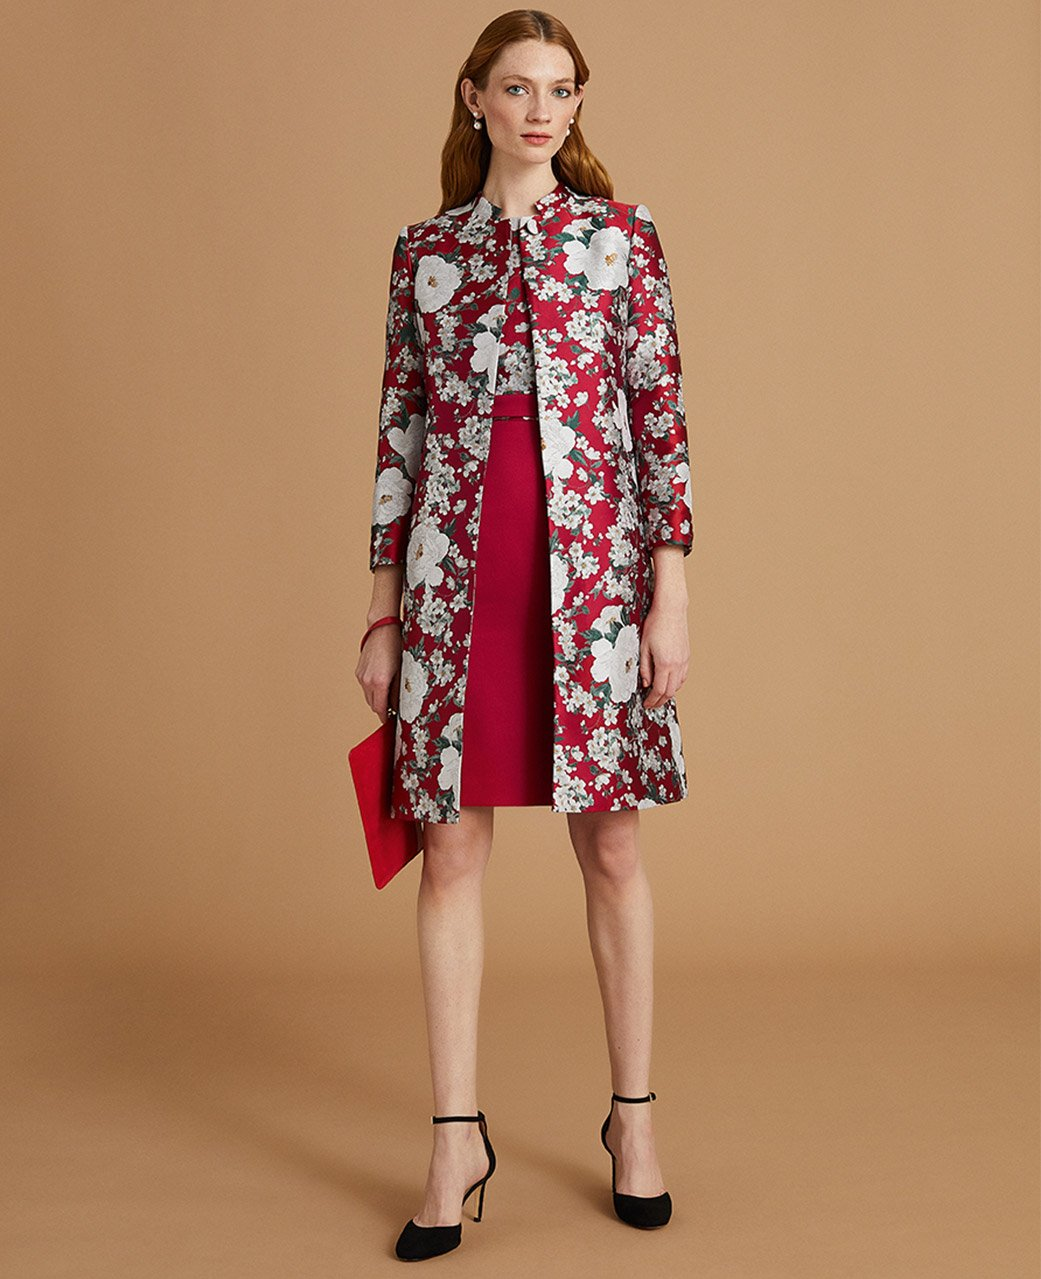 Red Shift Dress with White Floral Print and Matching Printed Coat